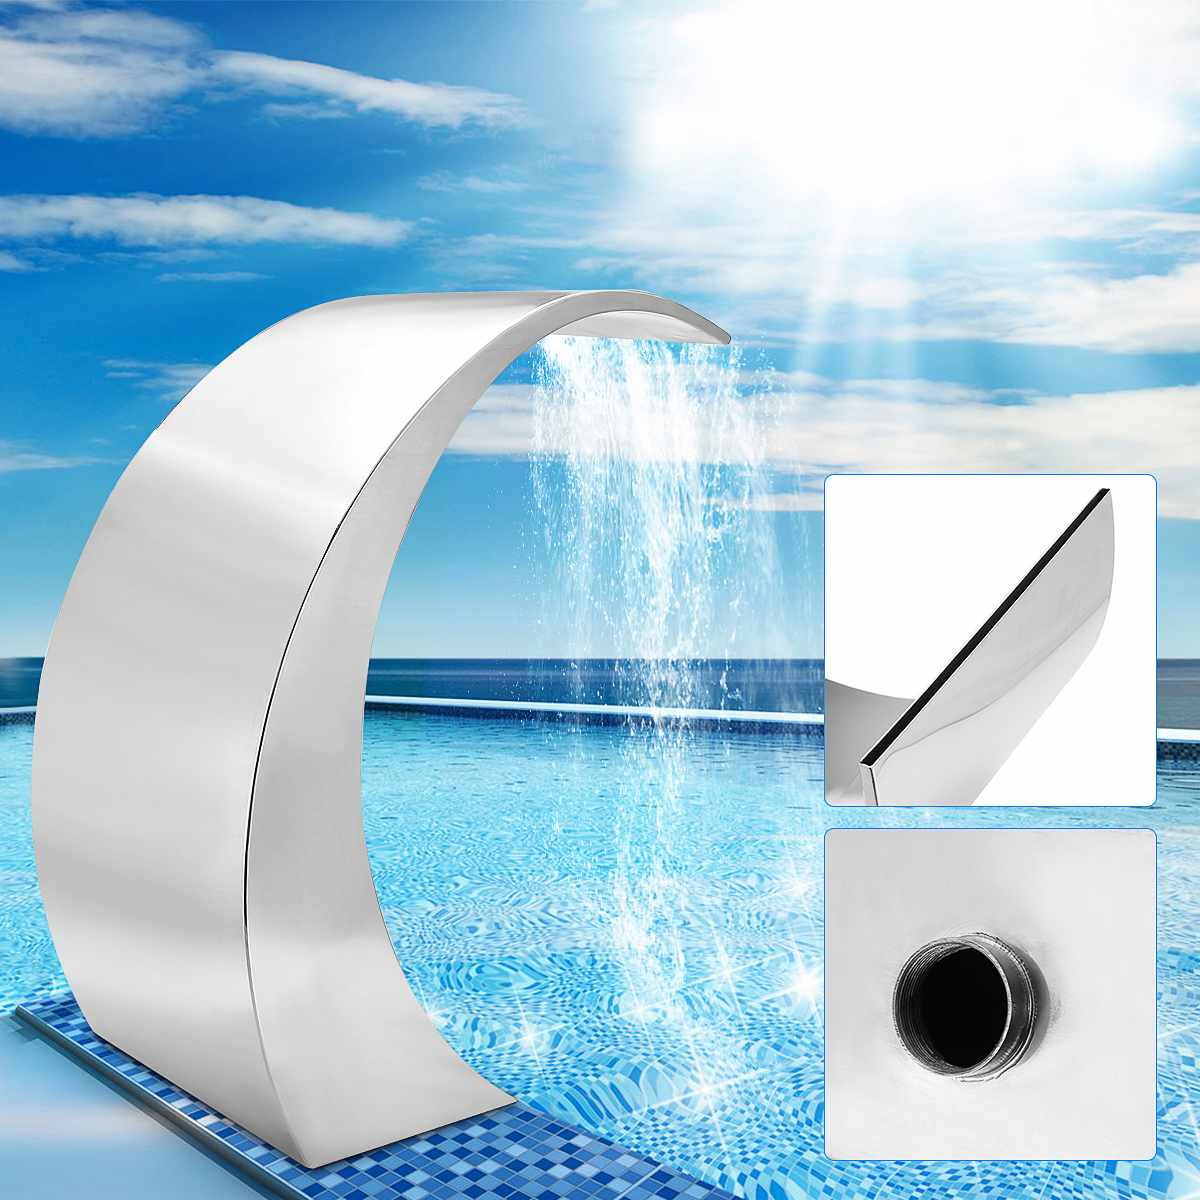 60*30cm Fountain Garden Pool Pond Stainless Steel Pool Accent solar Fountain Pond Garden Swimming Pool Waterfall|Watering Kits| |  - title=